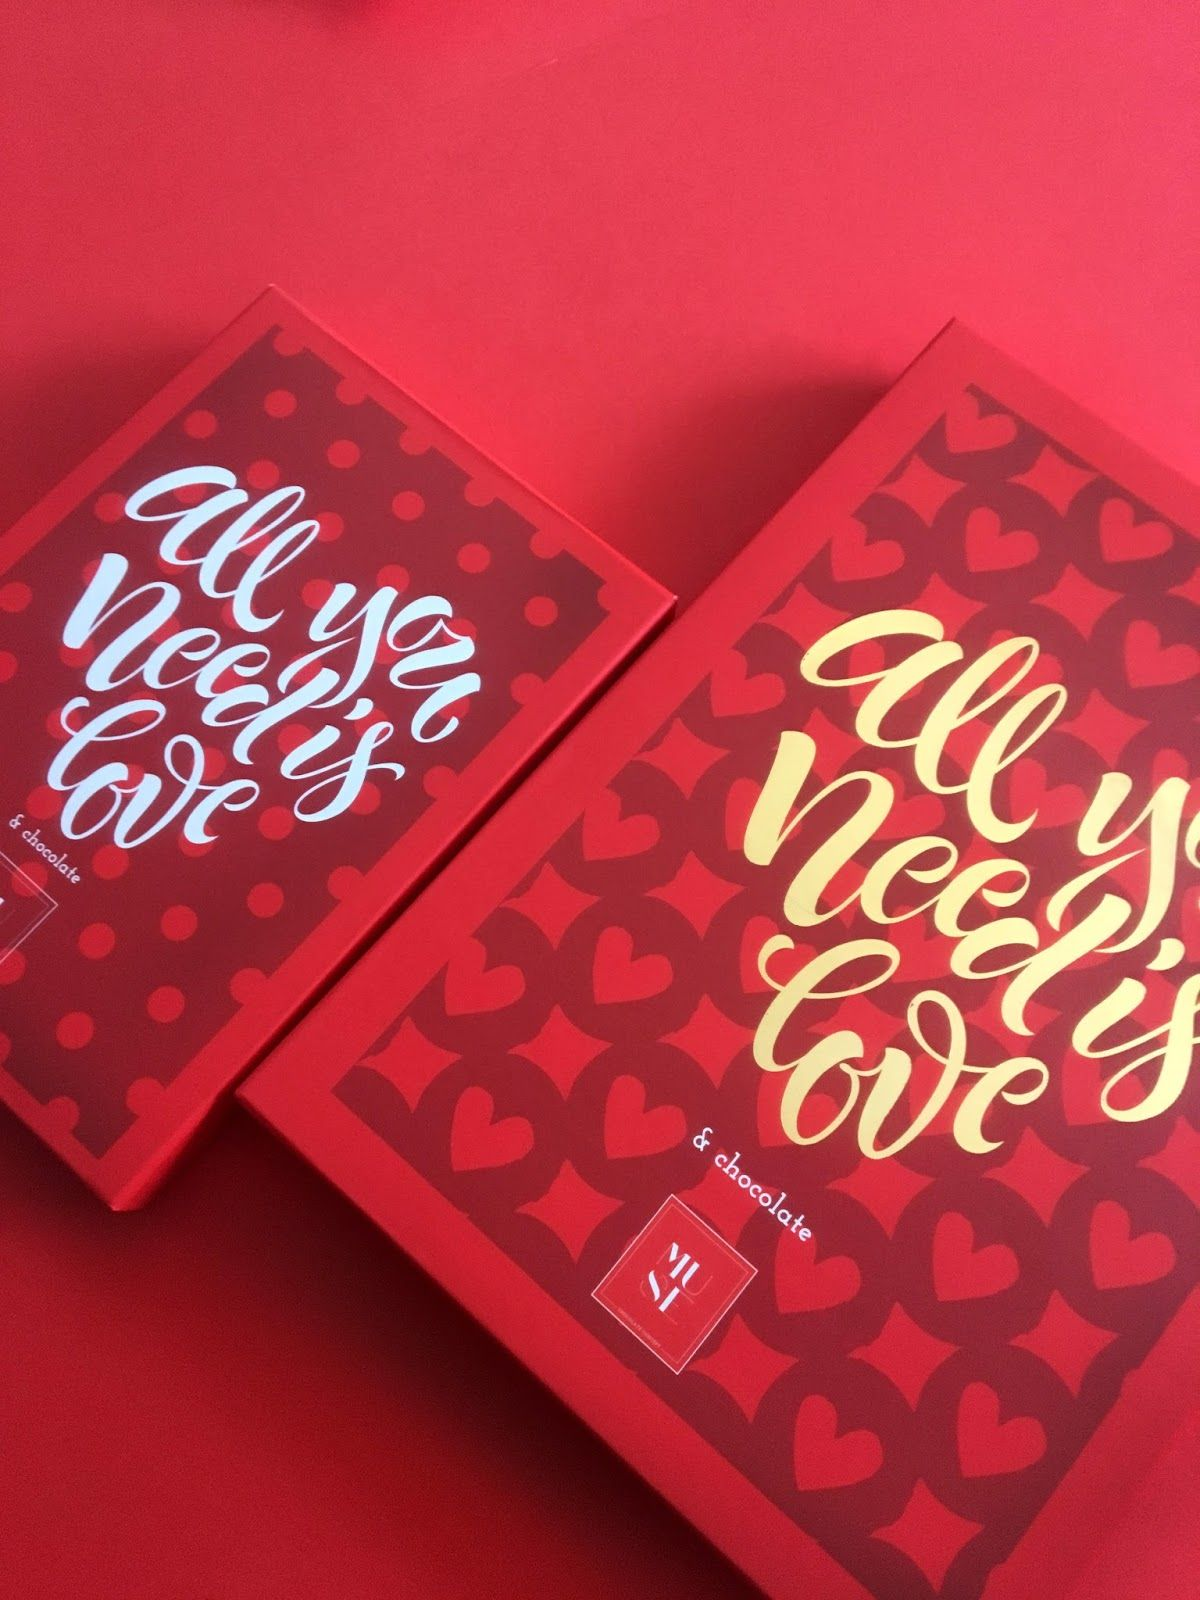 All You Need Is Love Chocolates On Packaging Of The World Creative Package Beautiful Packaging Design Chocolate Packaging Design Creative Packaging Design